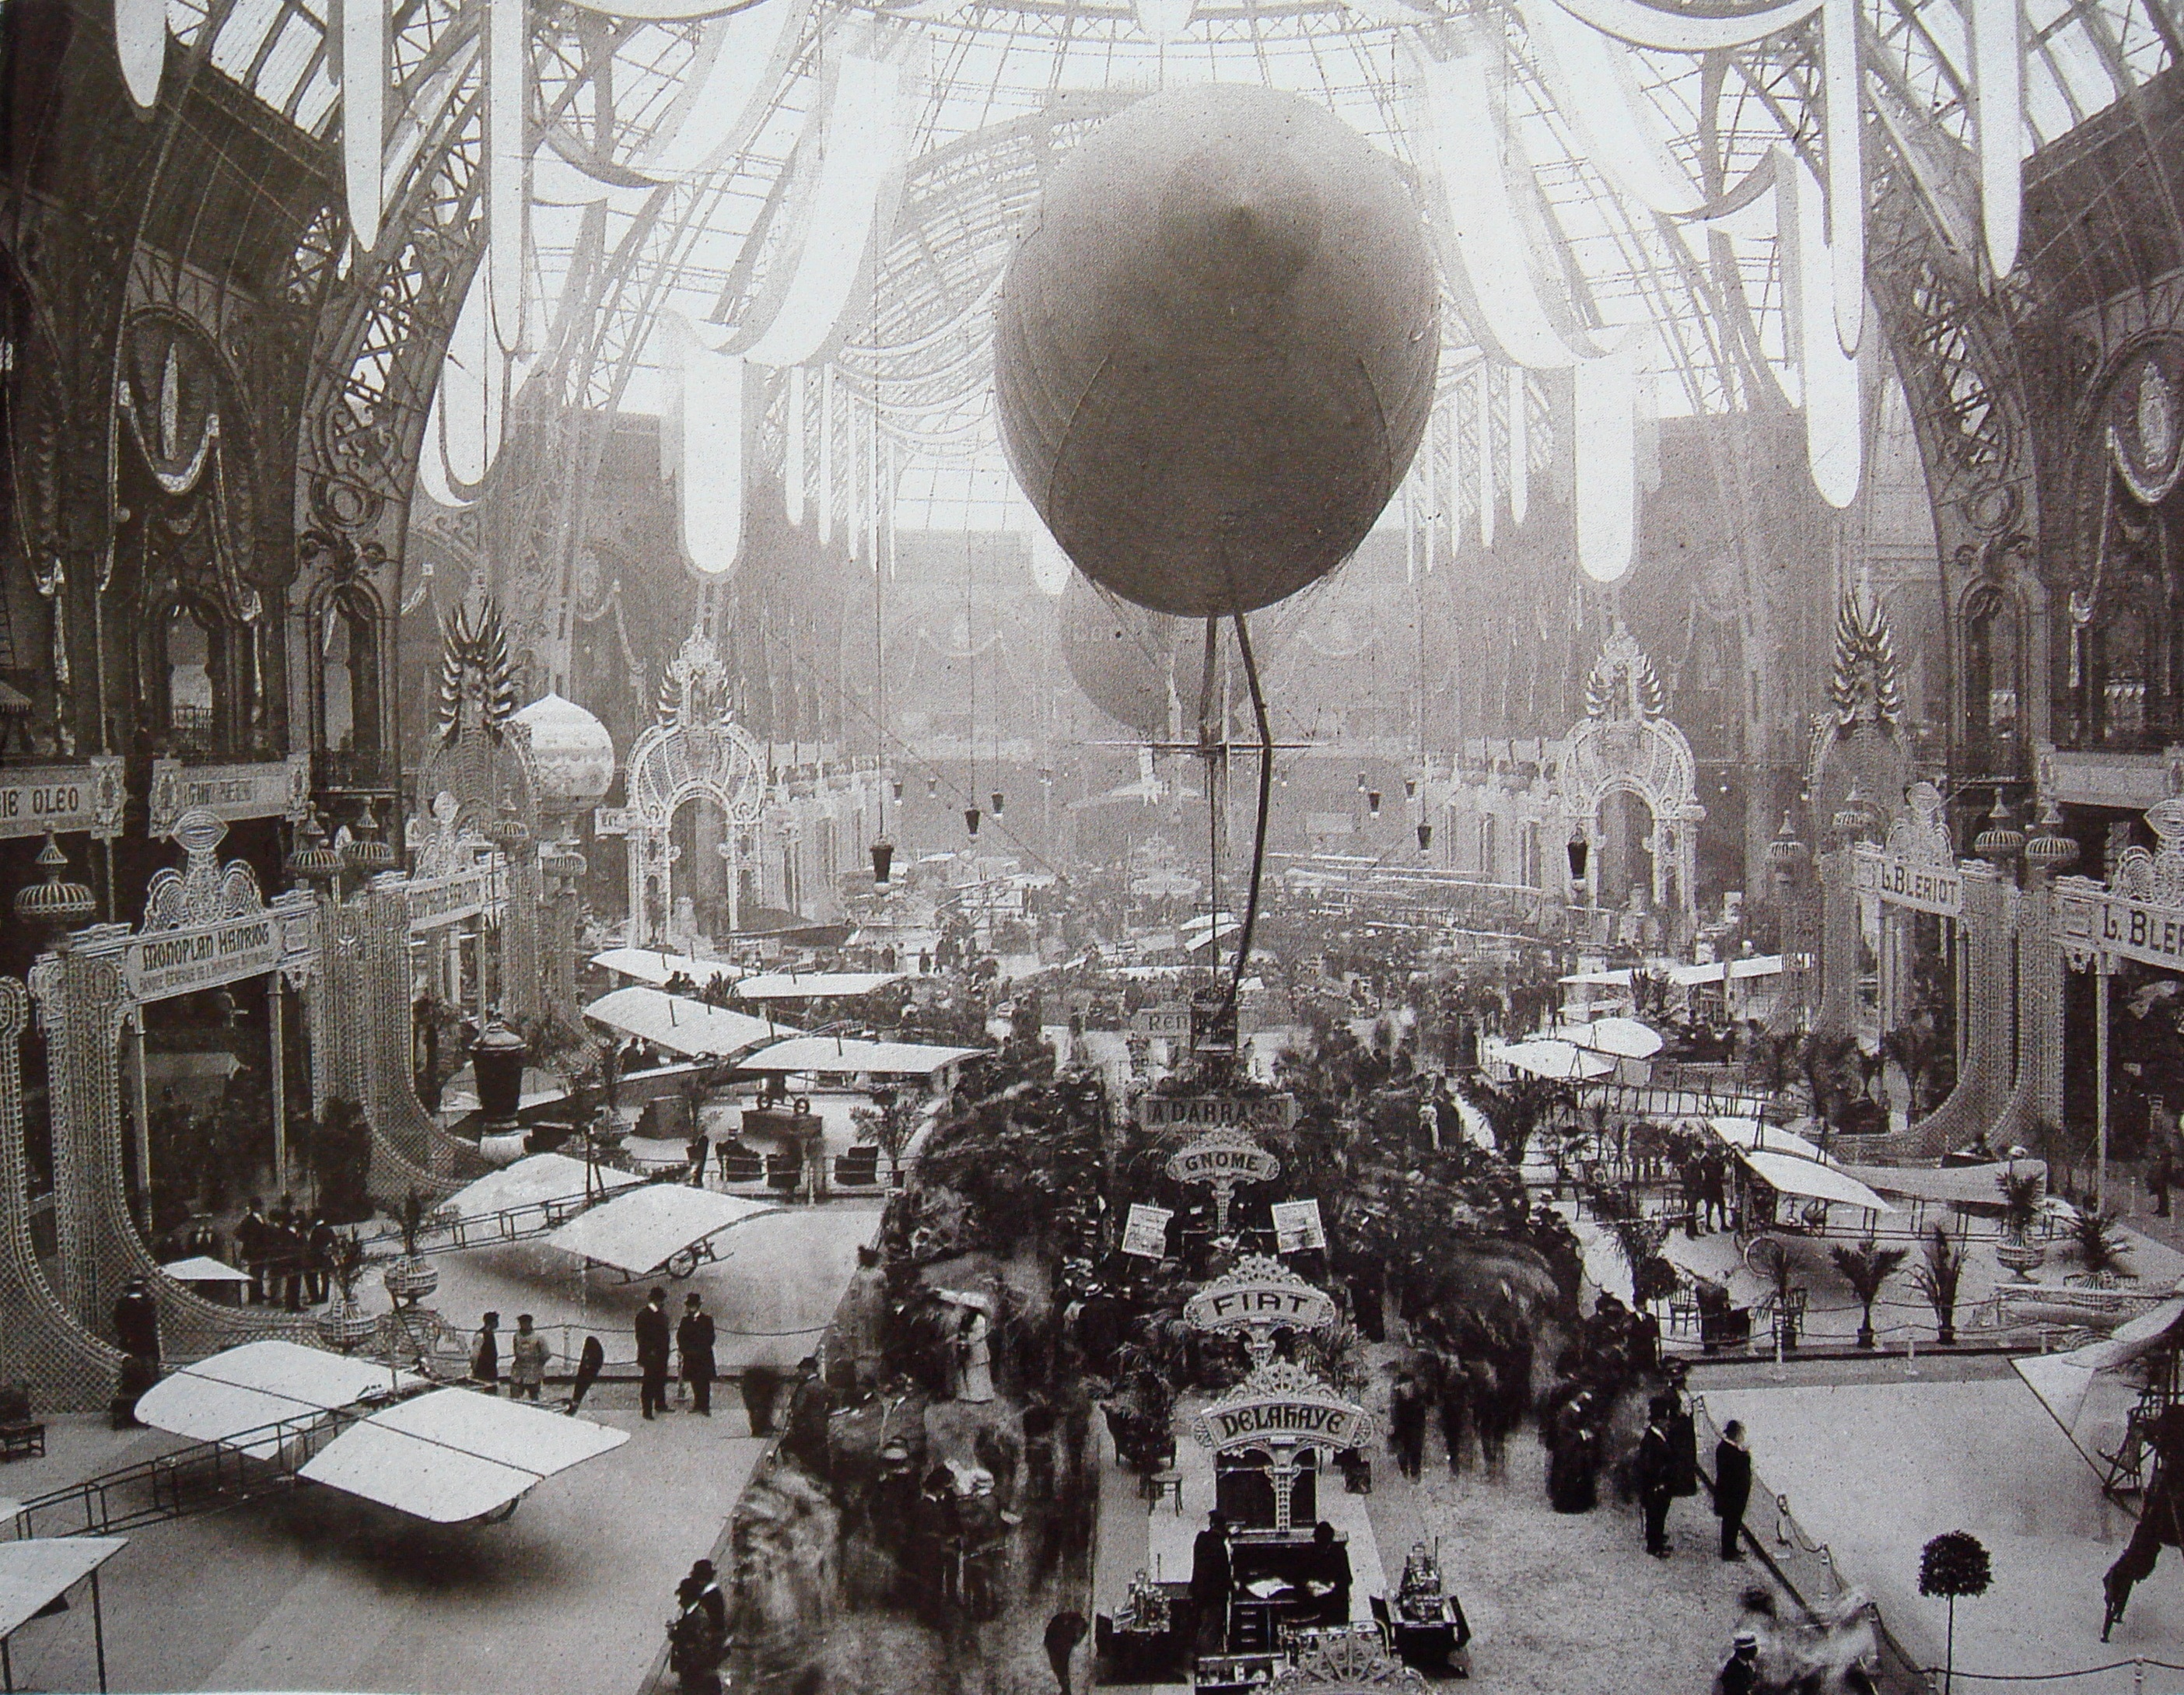 Salon de locomotion aerienne 1909 (precursor to the Paris Air Show) in the Grand Palais, Paris. E.xhibits include: Monoplan Hanriot; Louis Blériot; Delahaye; Fiat; Gnome; Darracq.